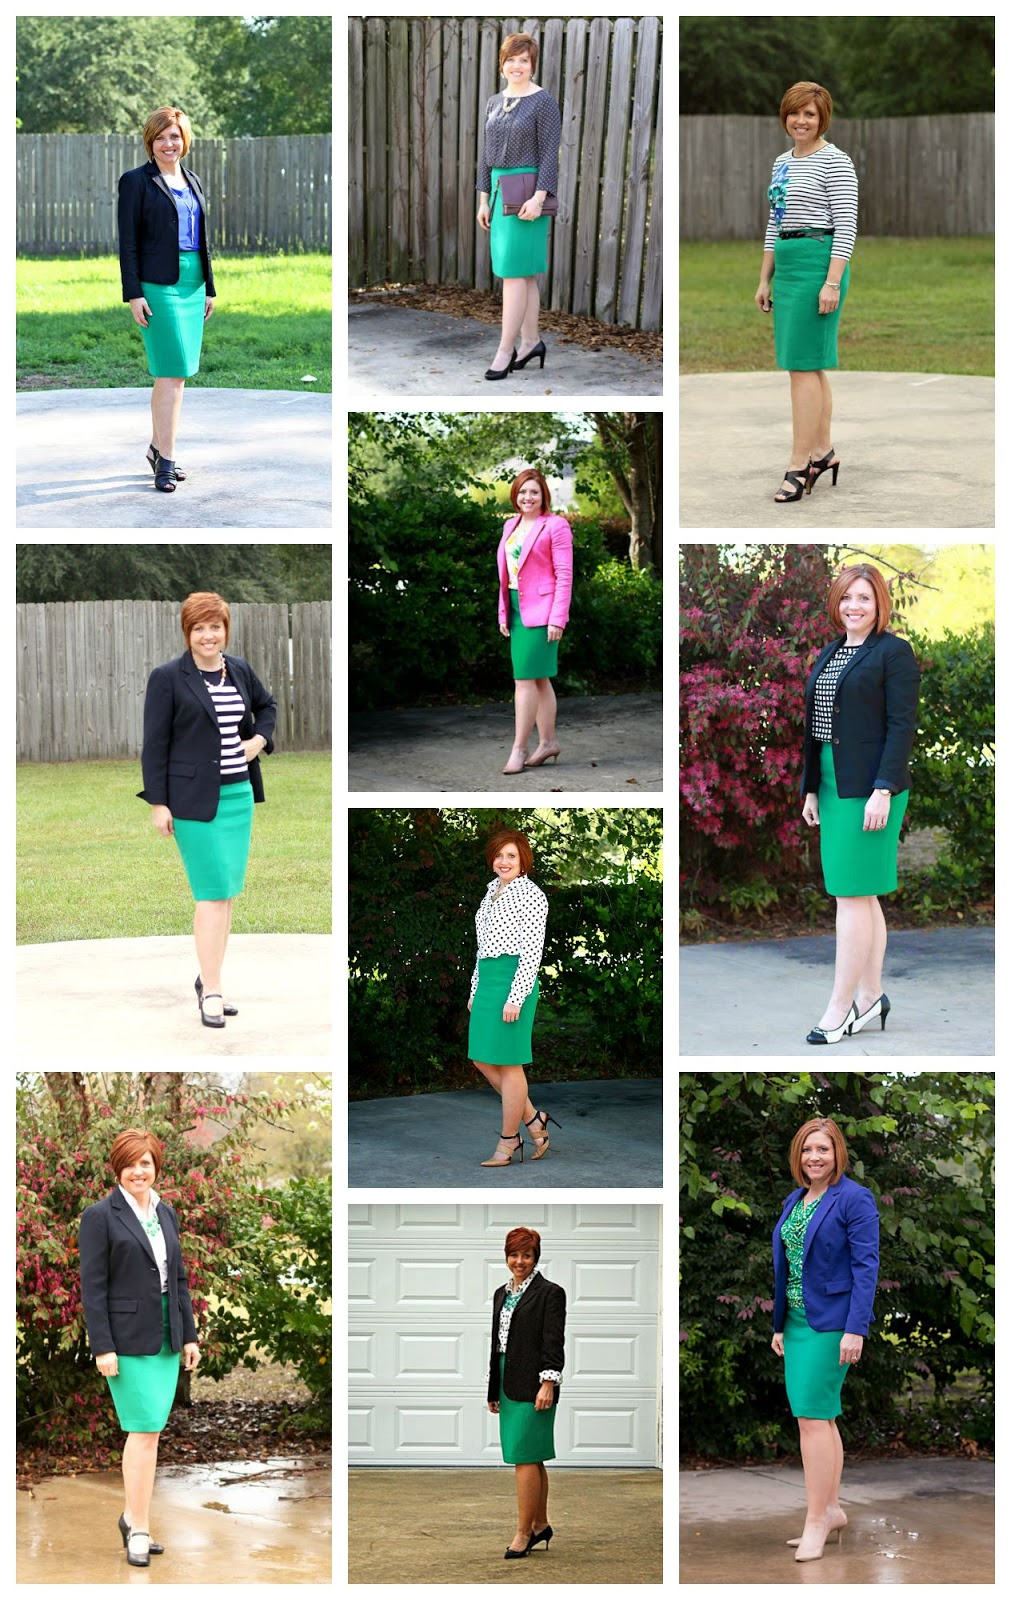 Green pencil skirt = ten ways